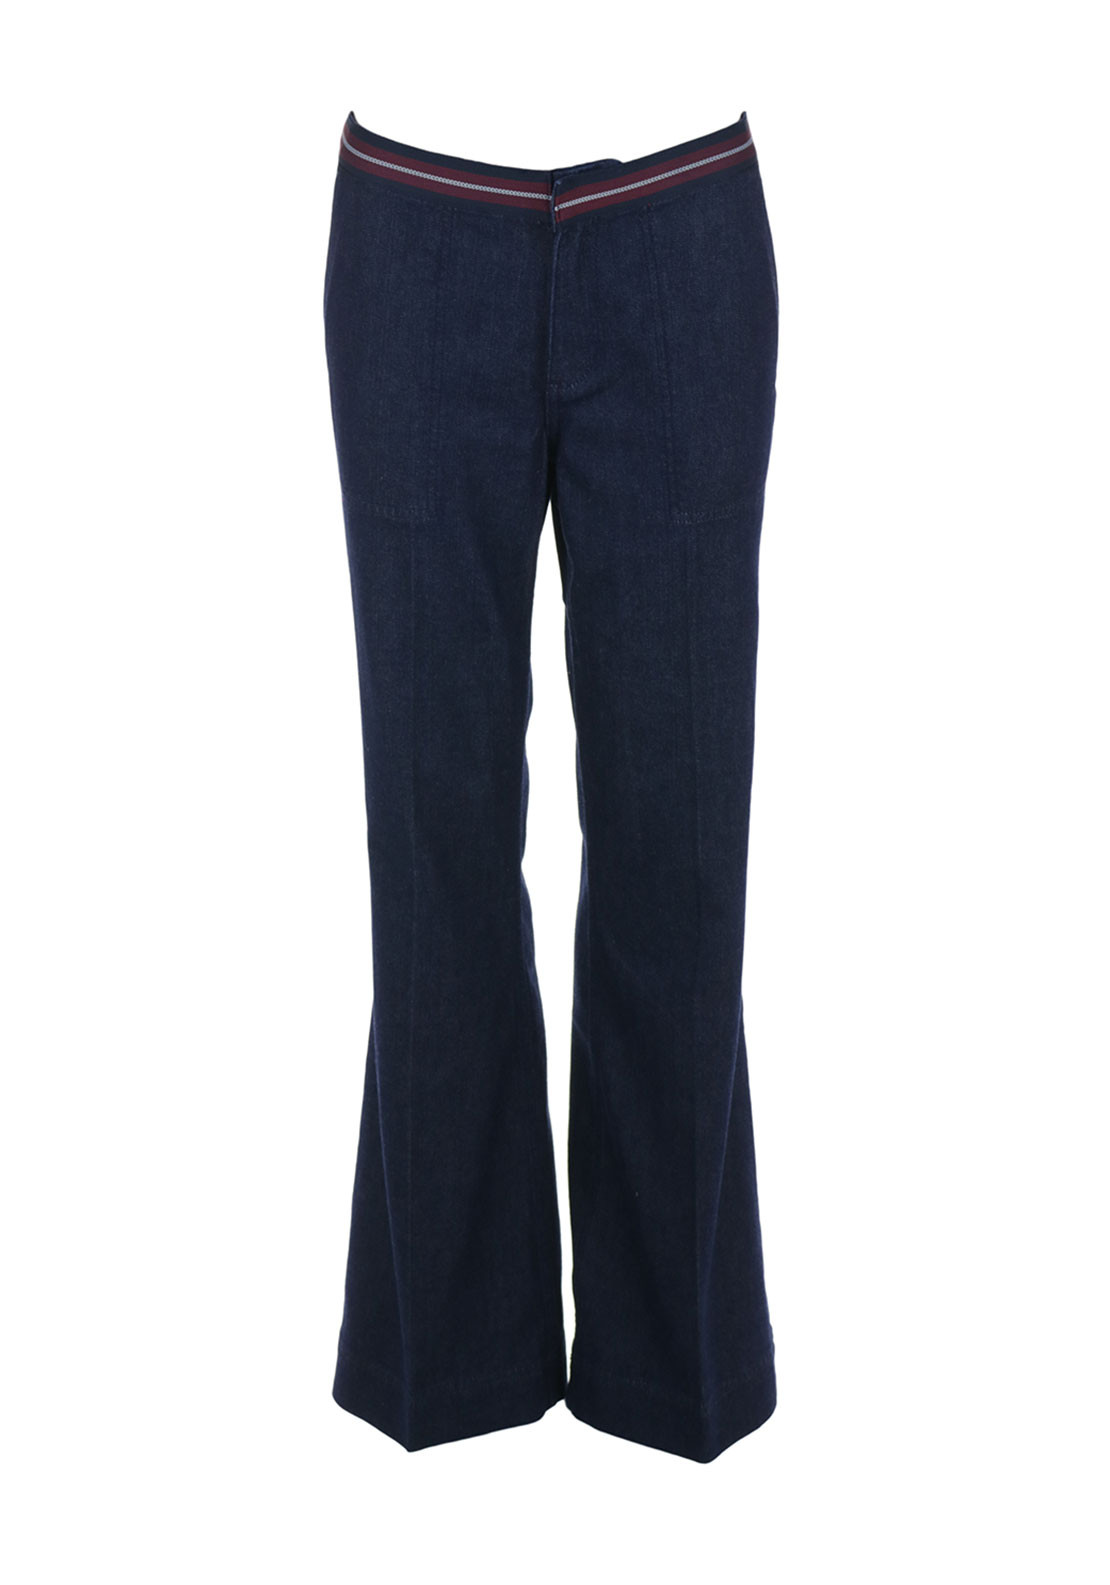 Tommy Hilfiger Womens Vanessa Flared Jeans, Navy